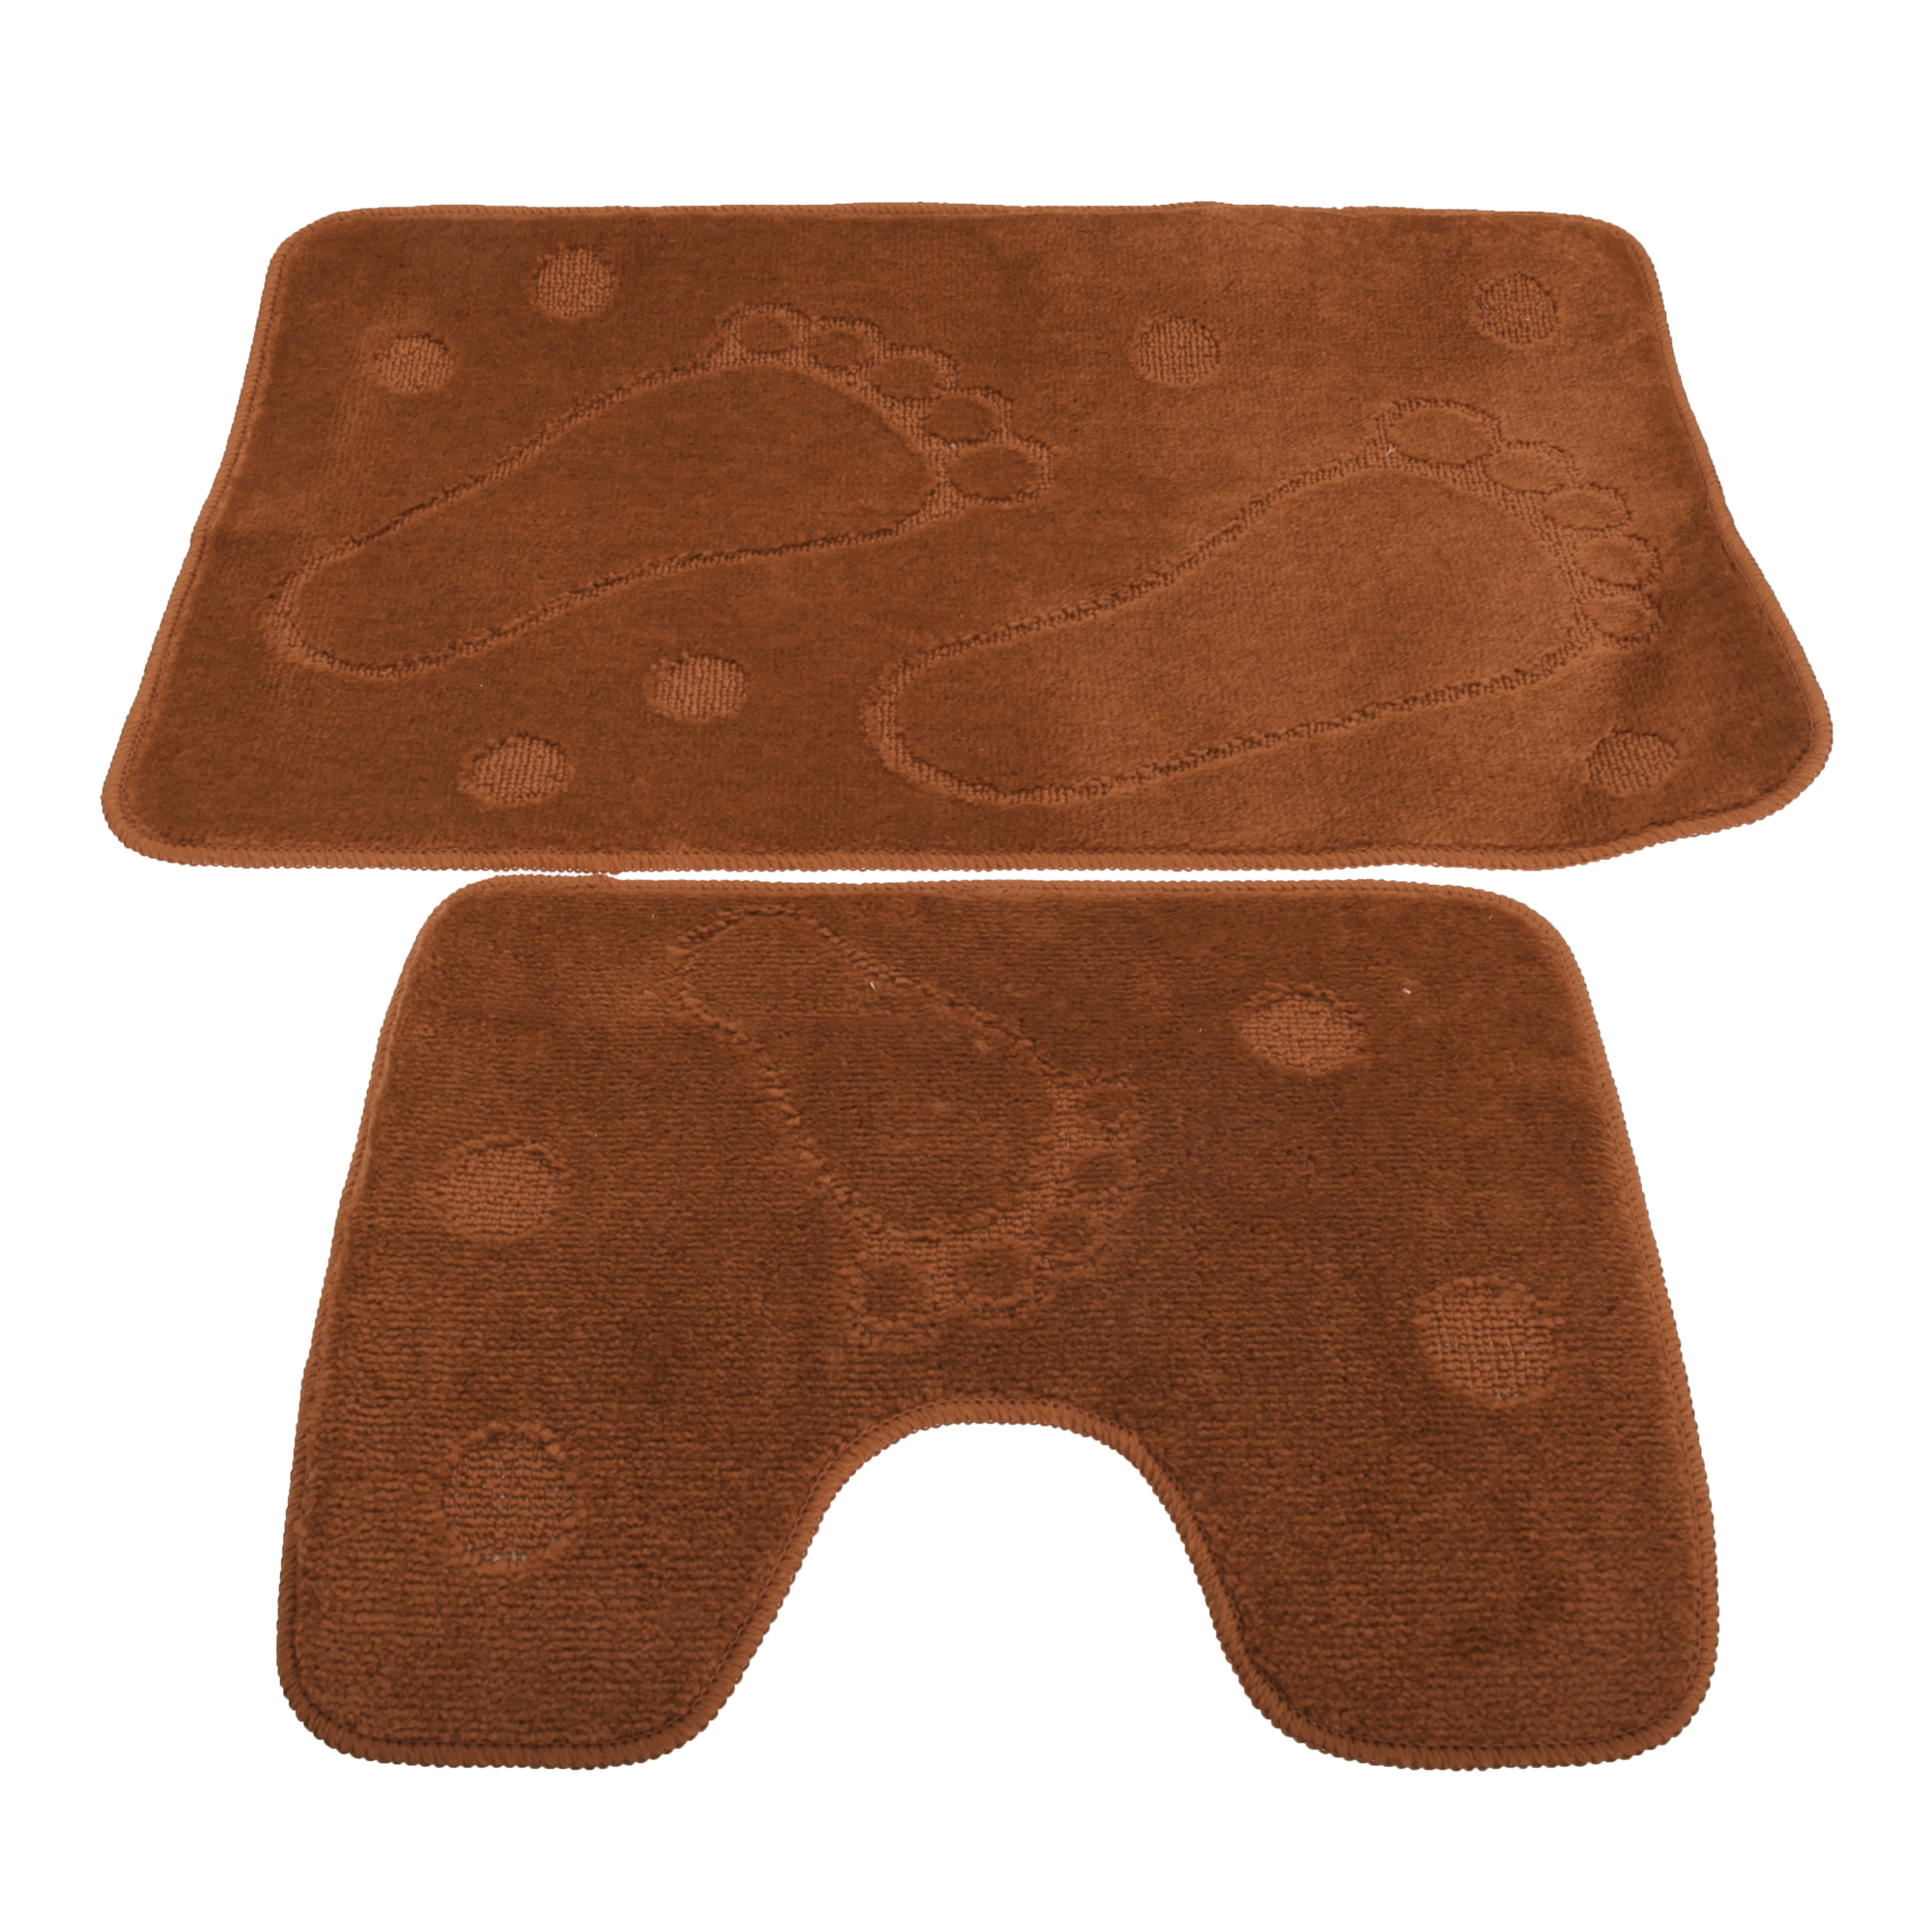 about 2 piece footprint design bathroom bath mat and pedestal rug set